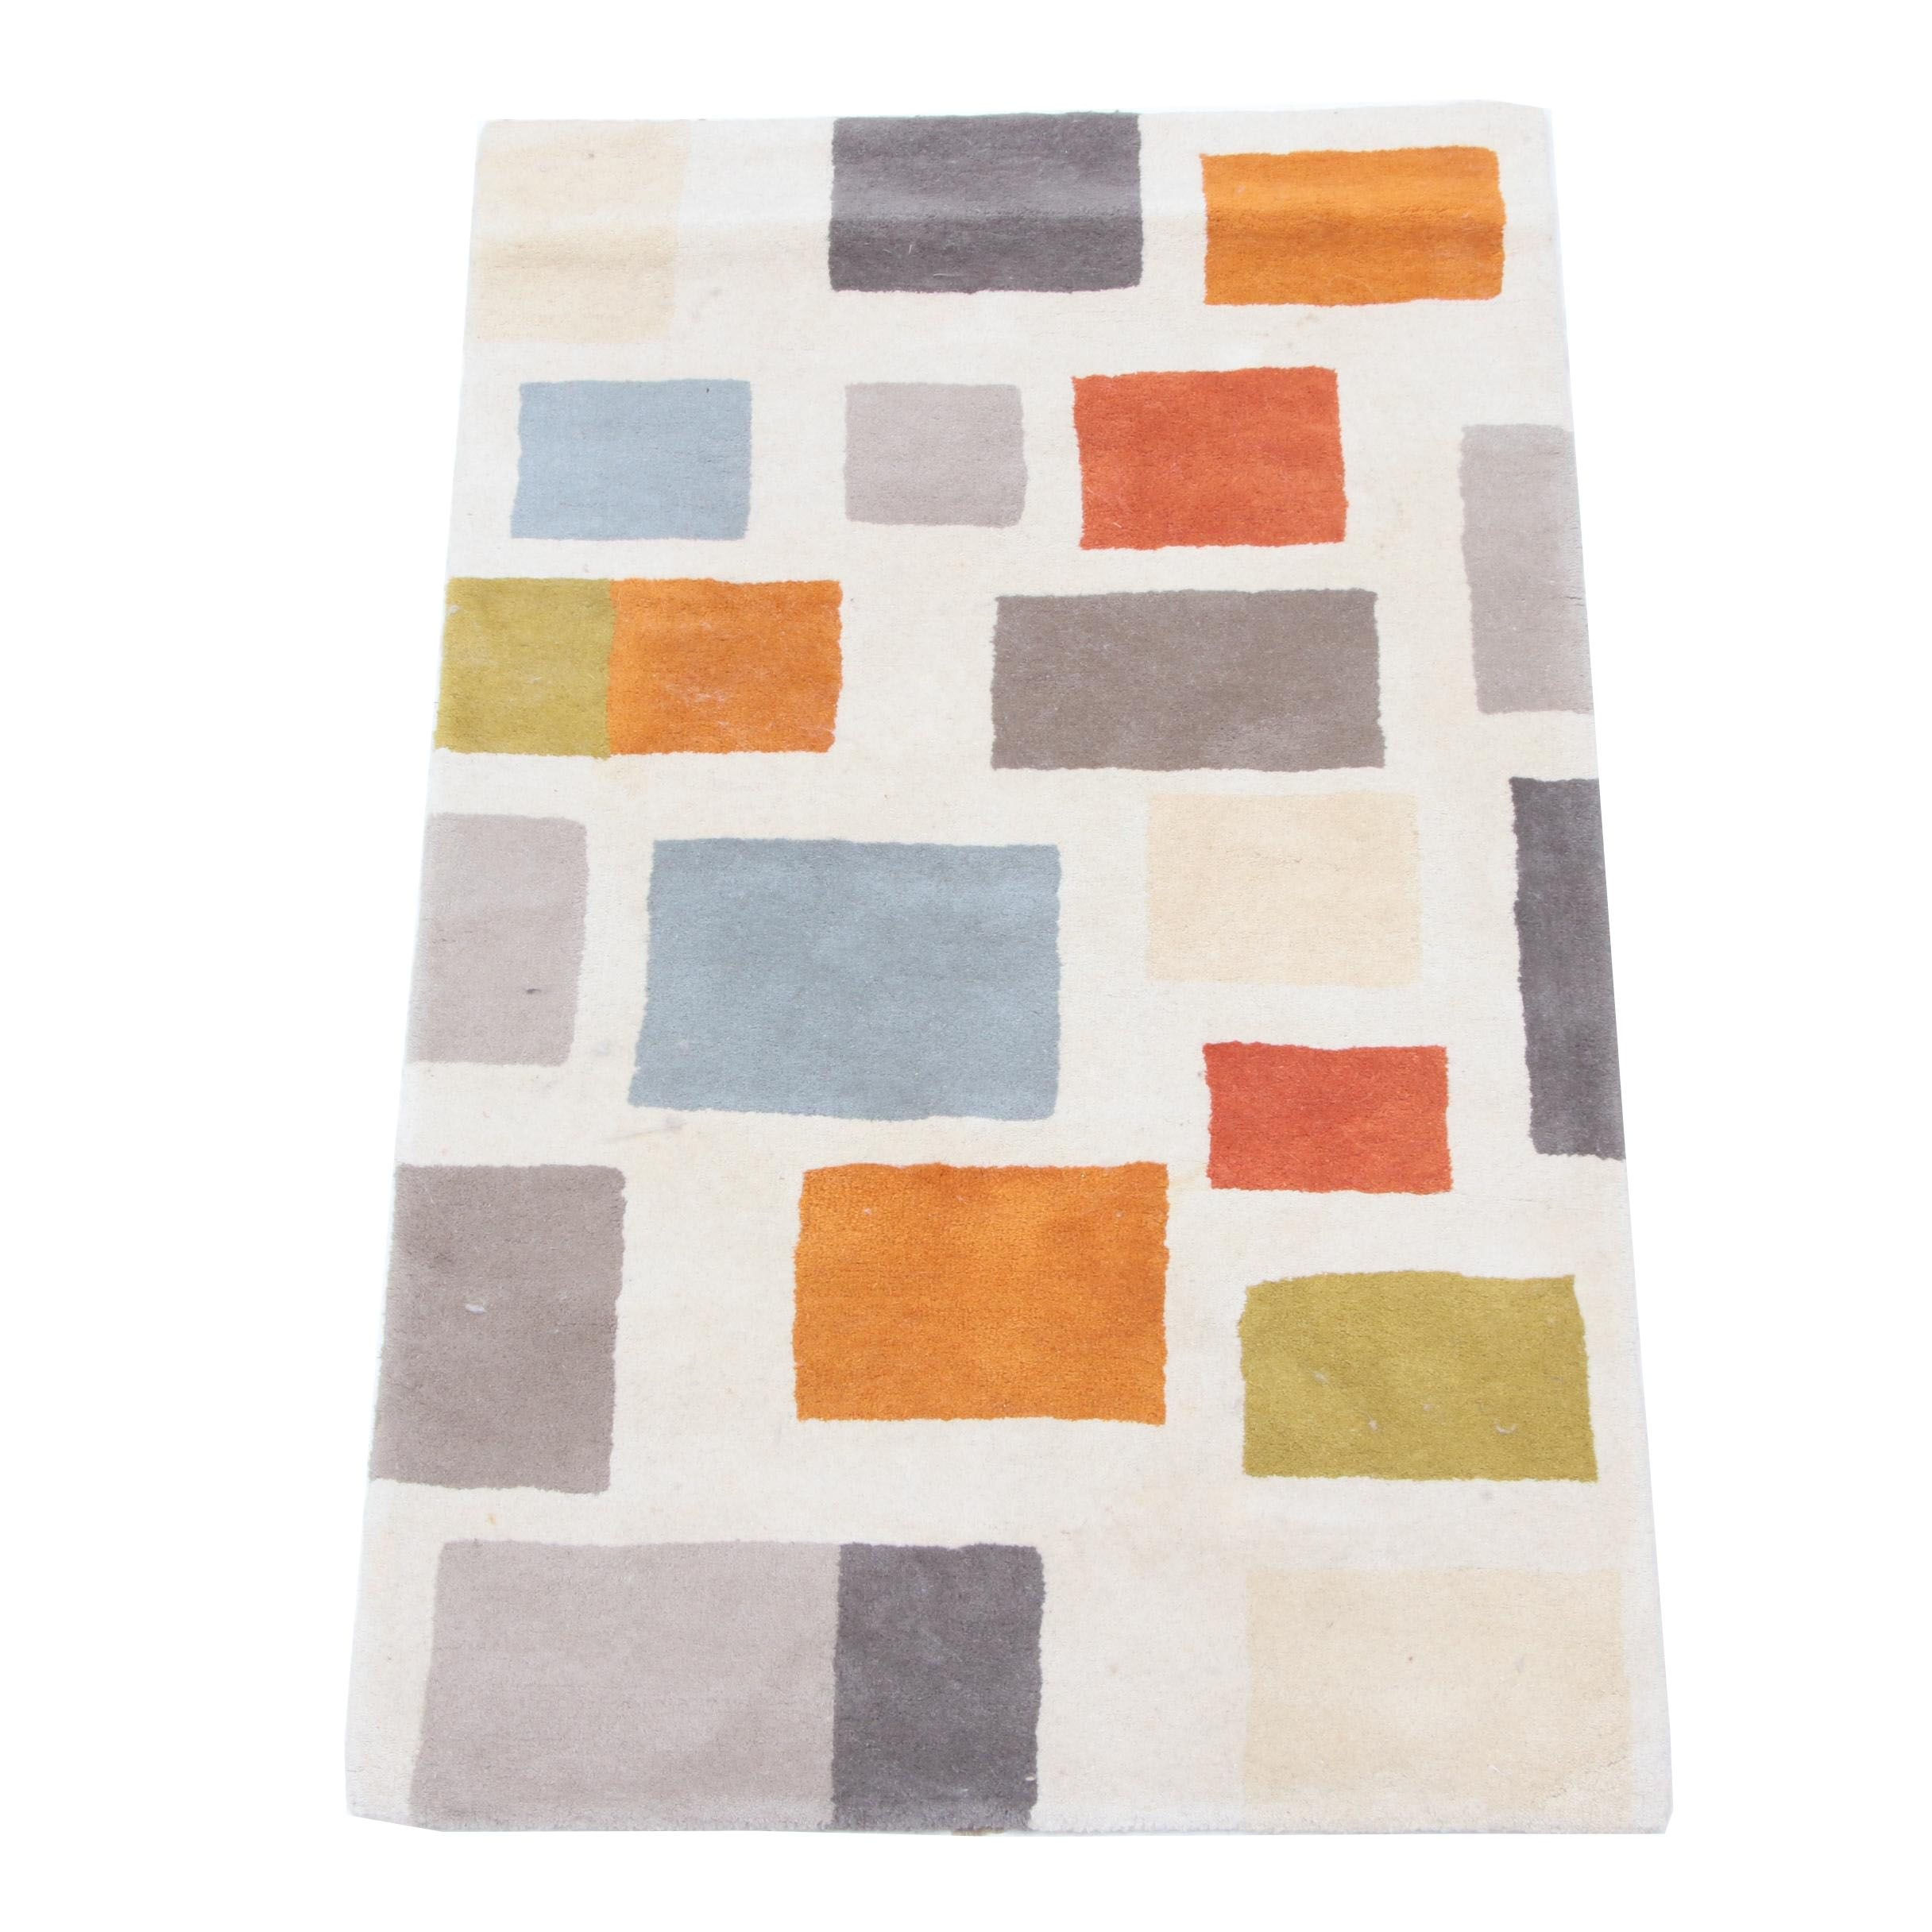 "Tufted Area Rug by Brink & Capman from the ""Scion"" Collection"